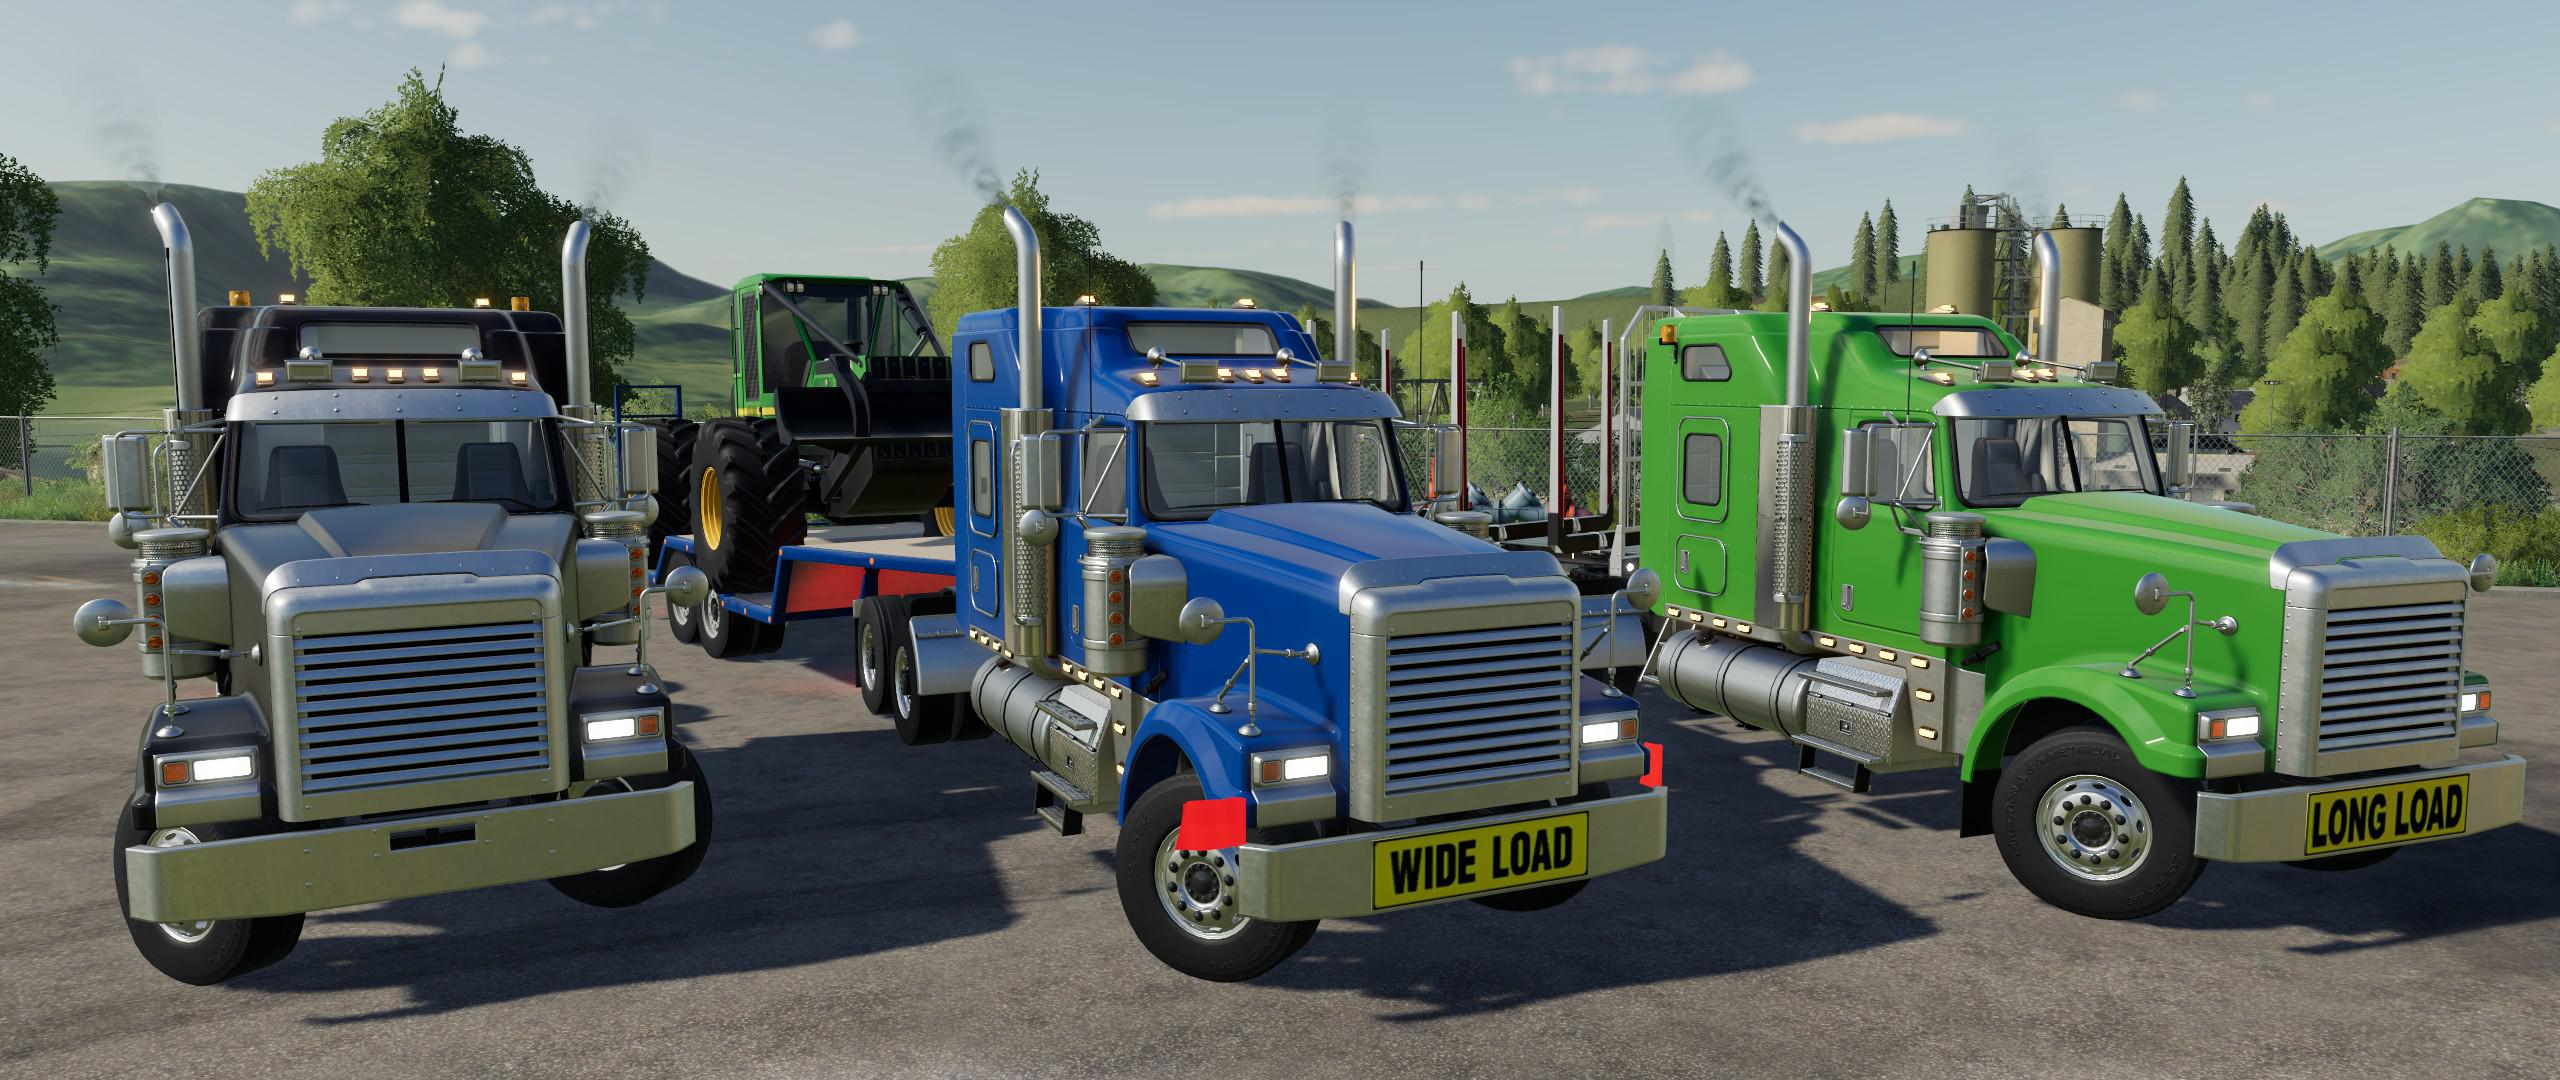 Lizard Roadrunner FB v1 0 FS 19